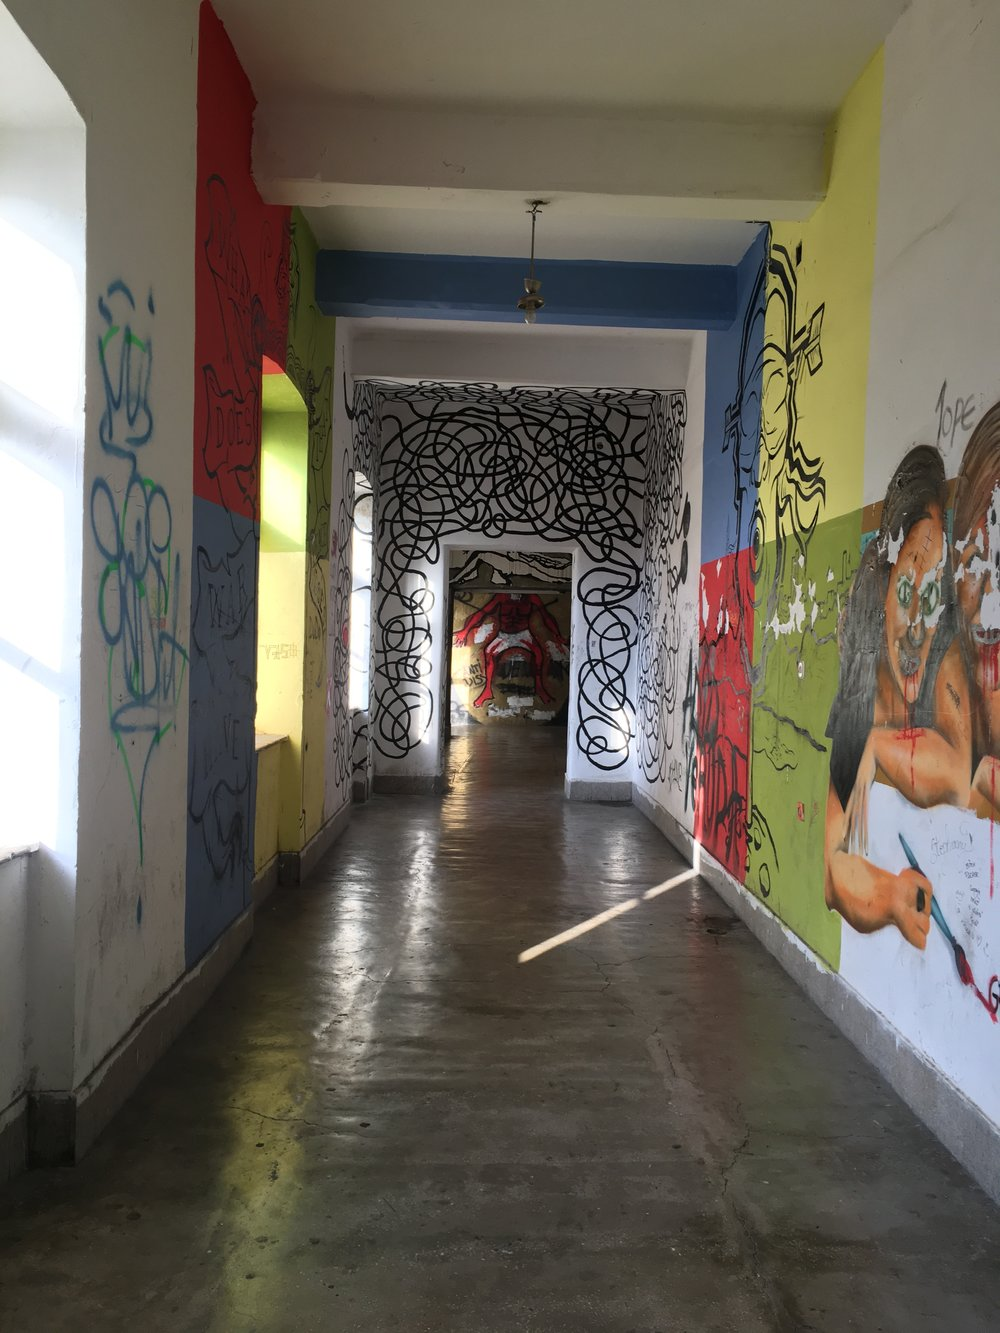 The cement floors and utilitarian white walls became canvasses for artists. Each turn brought something new.